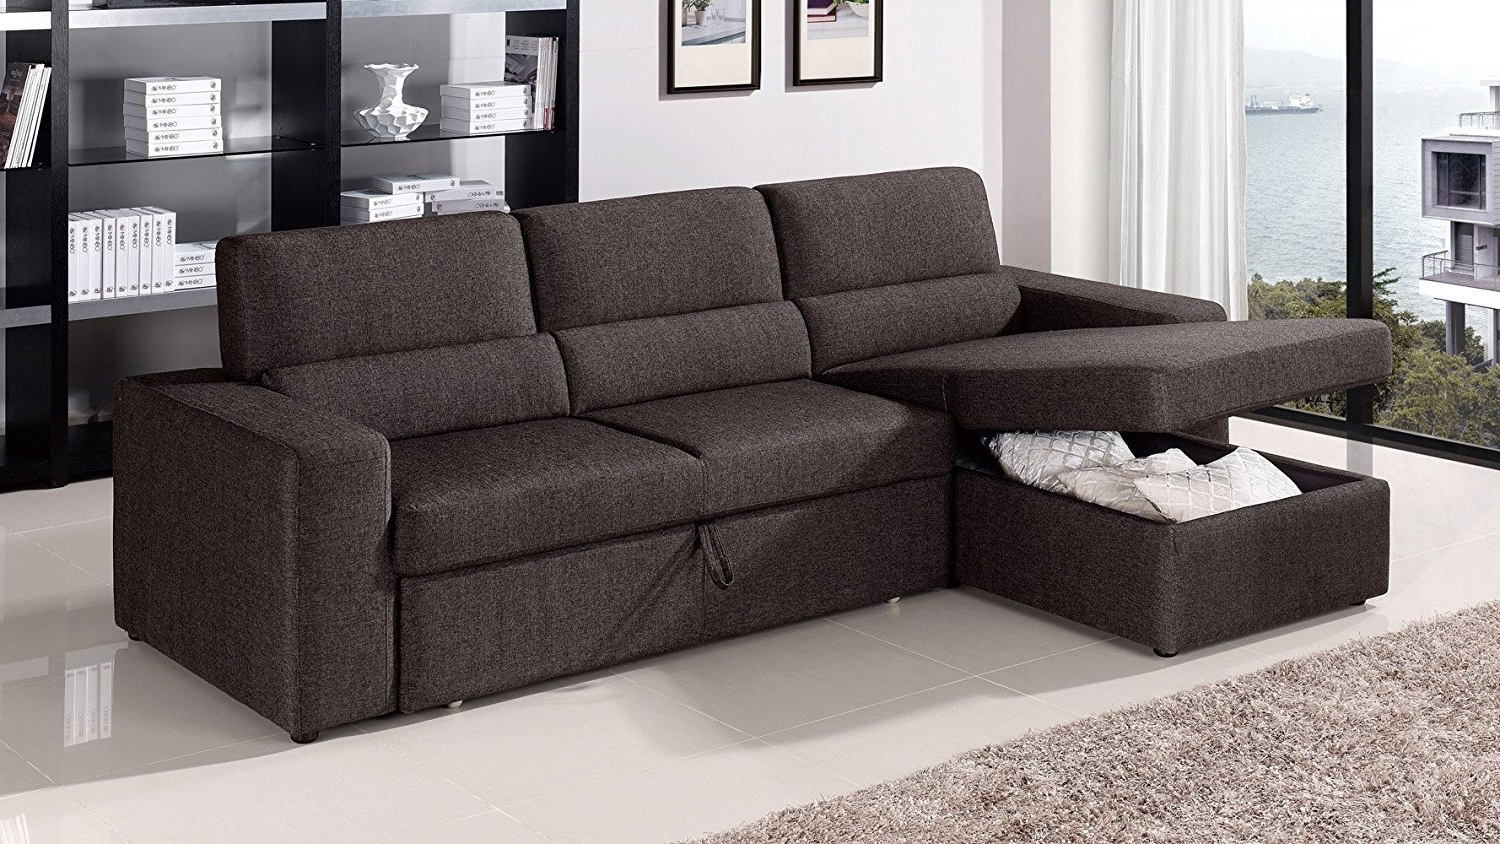 Most Recent Amazon: Black/brown Clubber Sleeper Sectional Sofa – Left Inside Chaise Sofa Sectionals (View 10 of 15)